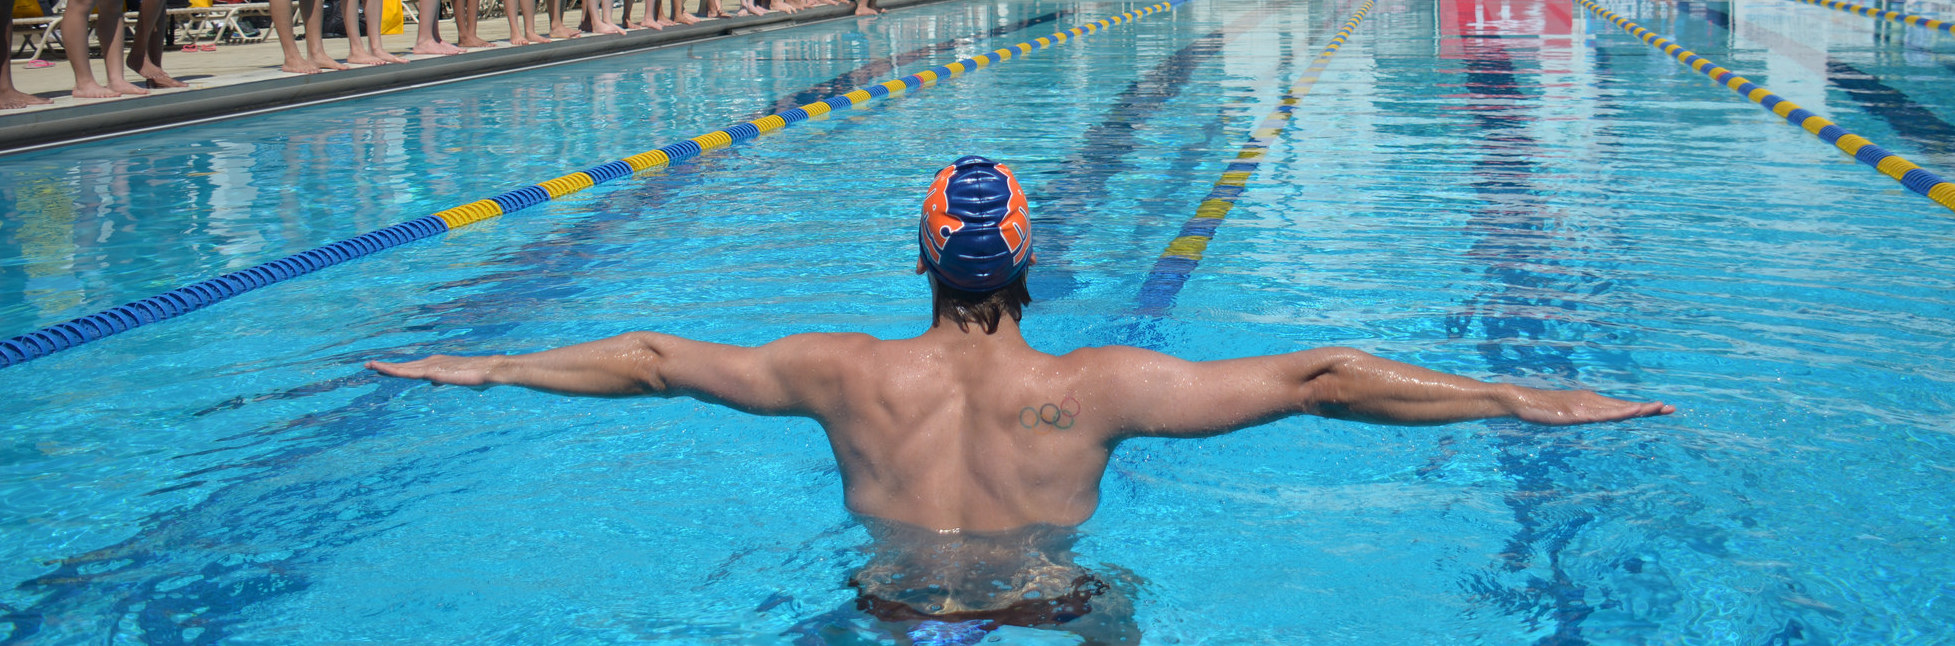 Swim clinic faster freestyle and backstroke racing - West mesa high school swimming pool ...